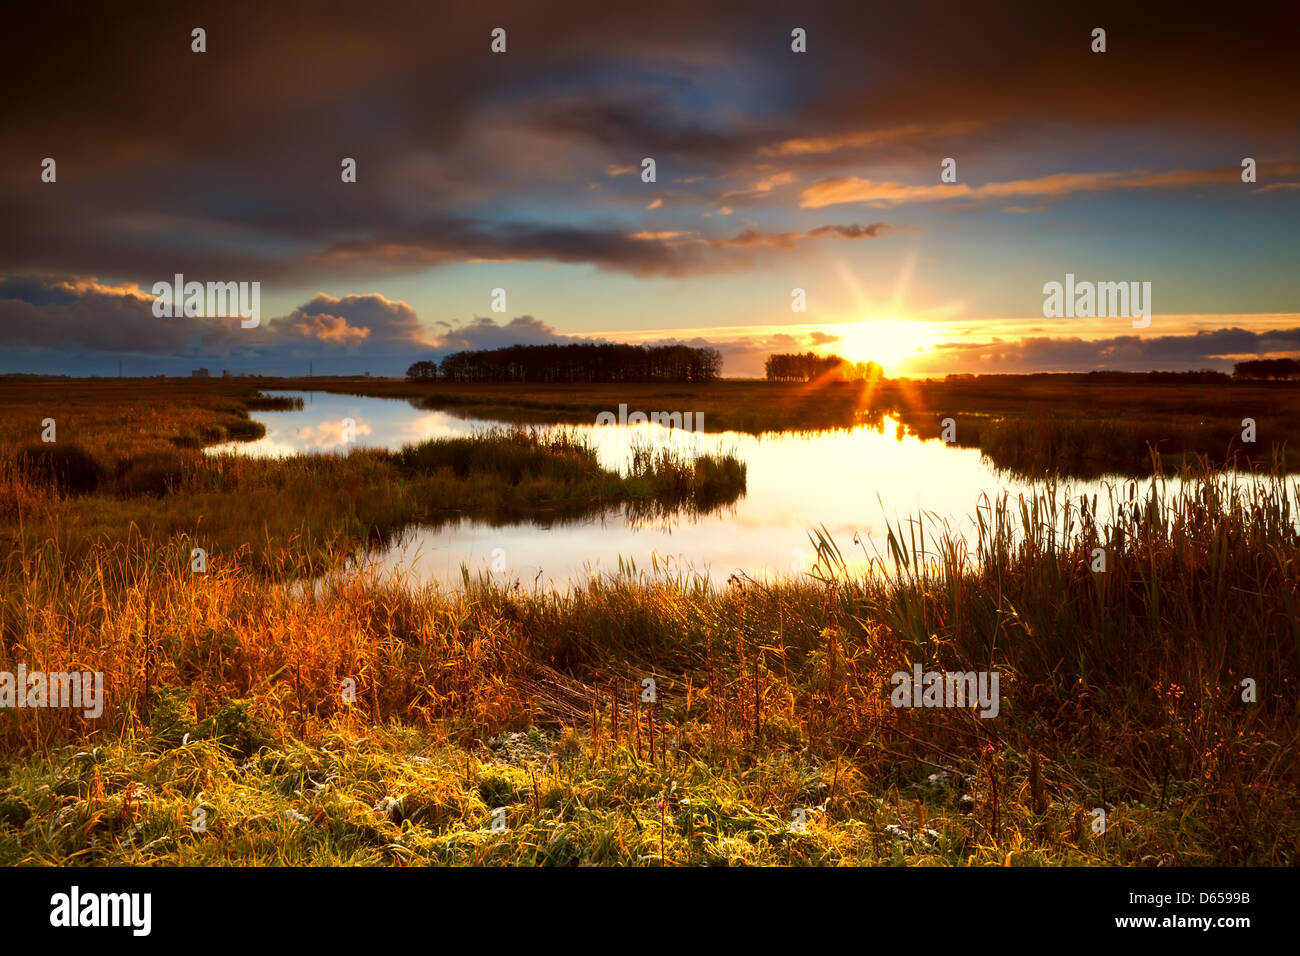 dramatic sunrise over lake - Stock Image